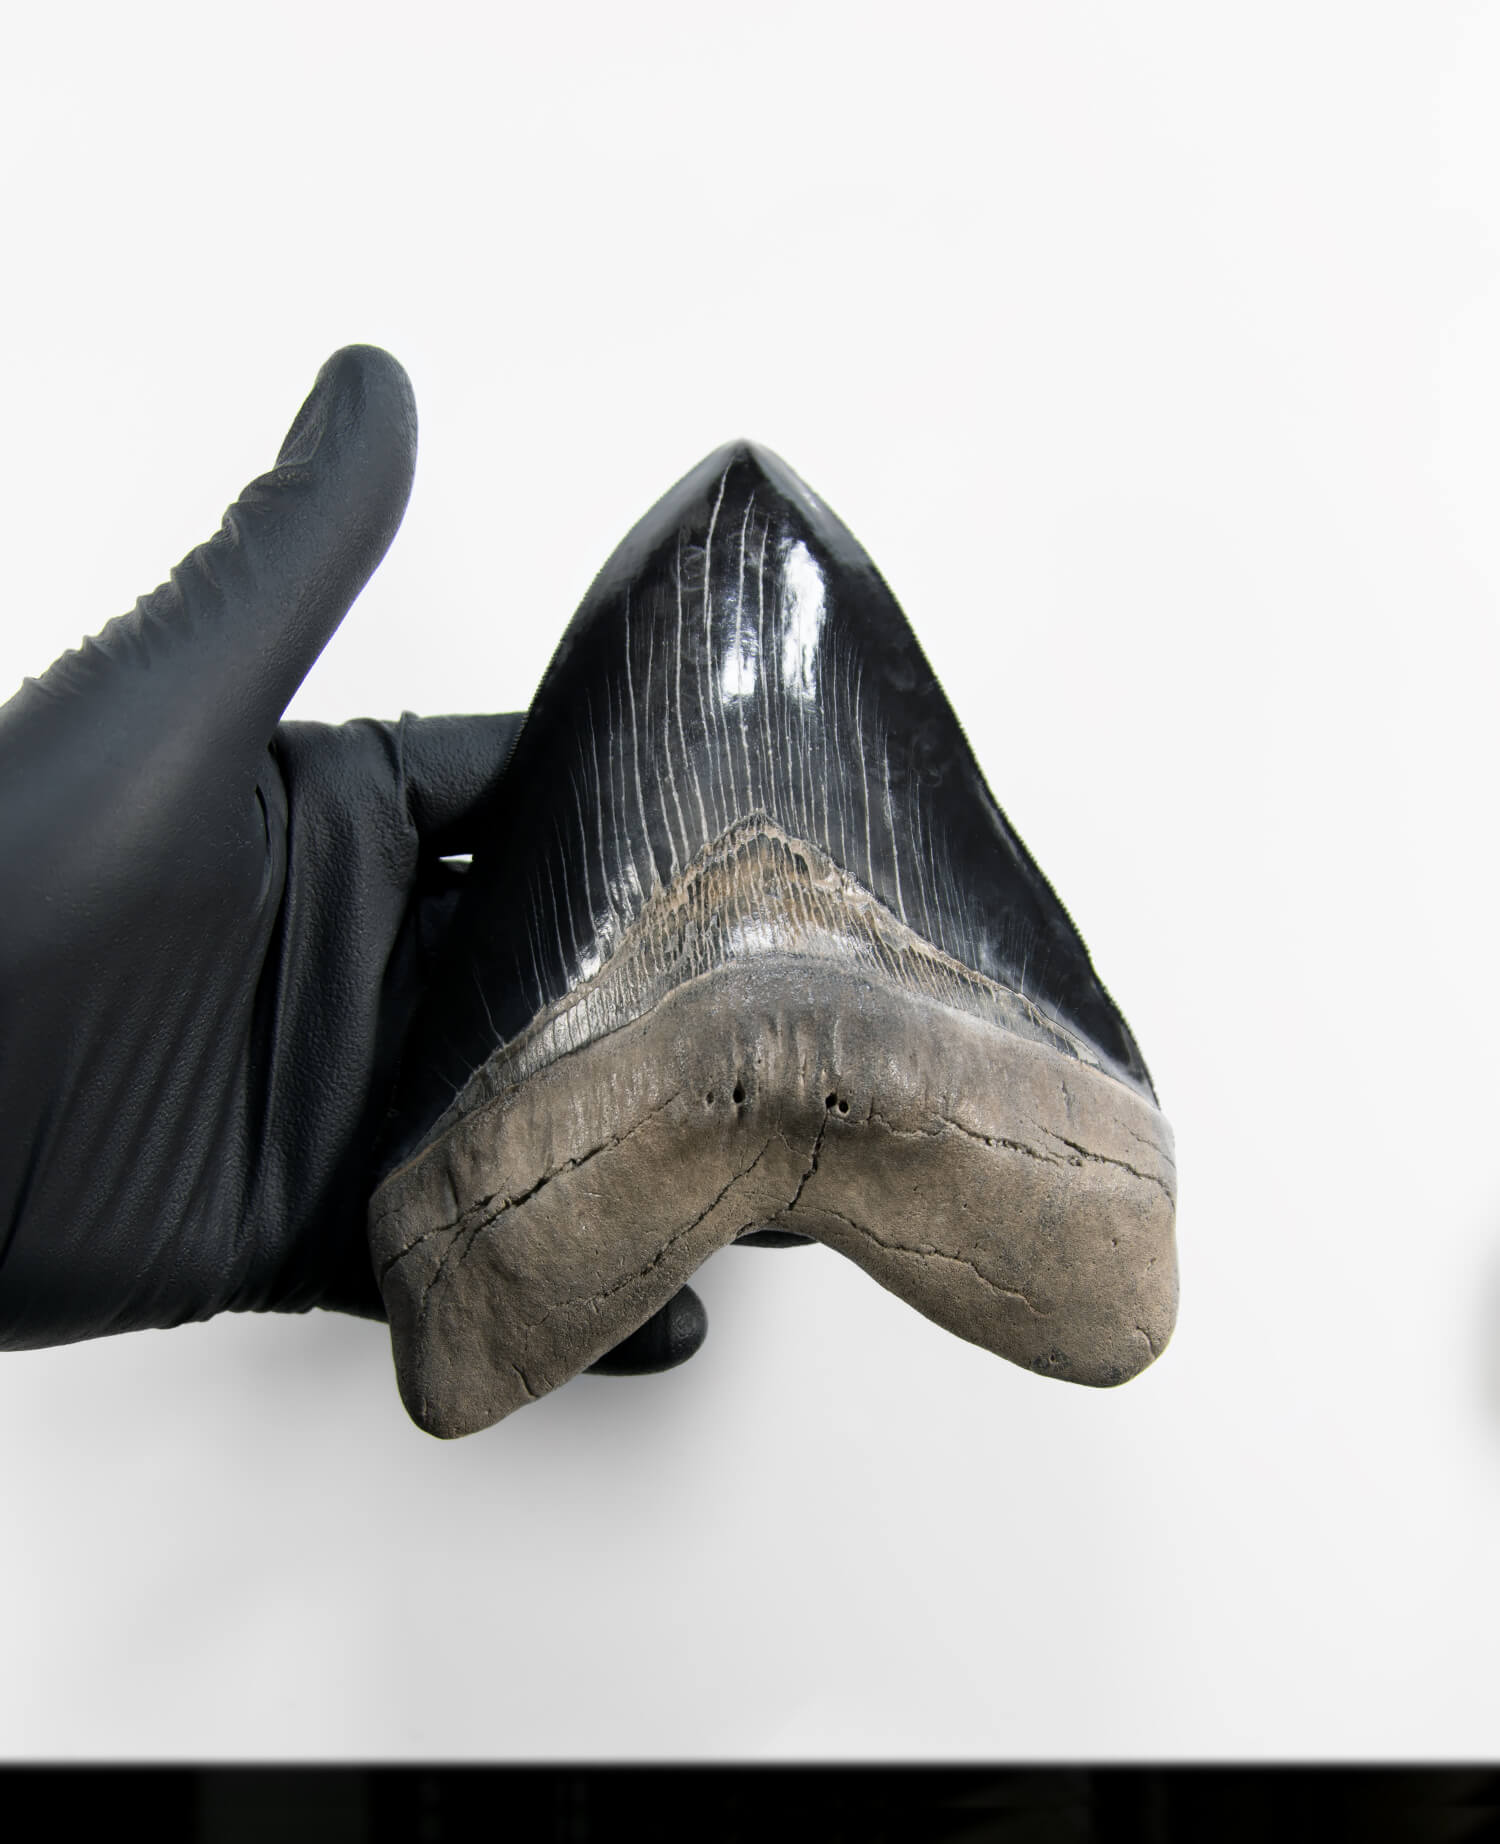 A stunning museum-standard rare fossil Megalodon carcharodon shark tooth for sale on a bronze stand measuring 6 inches